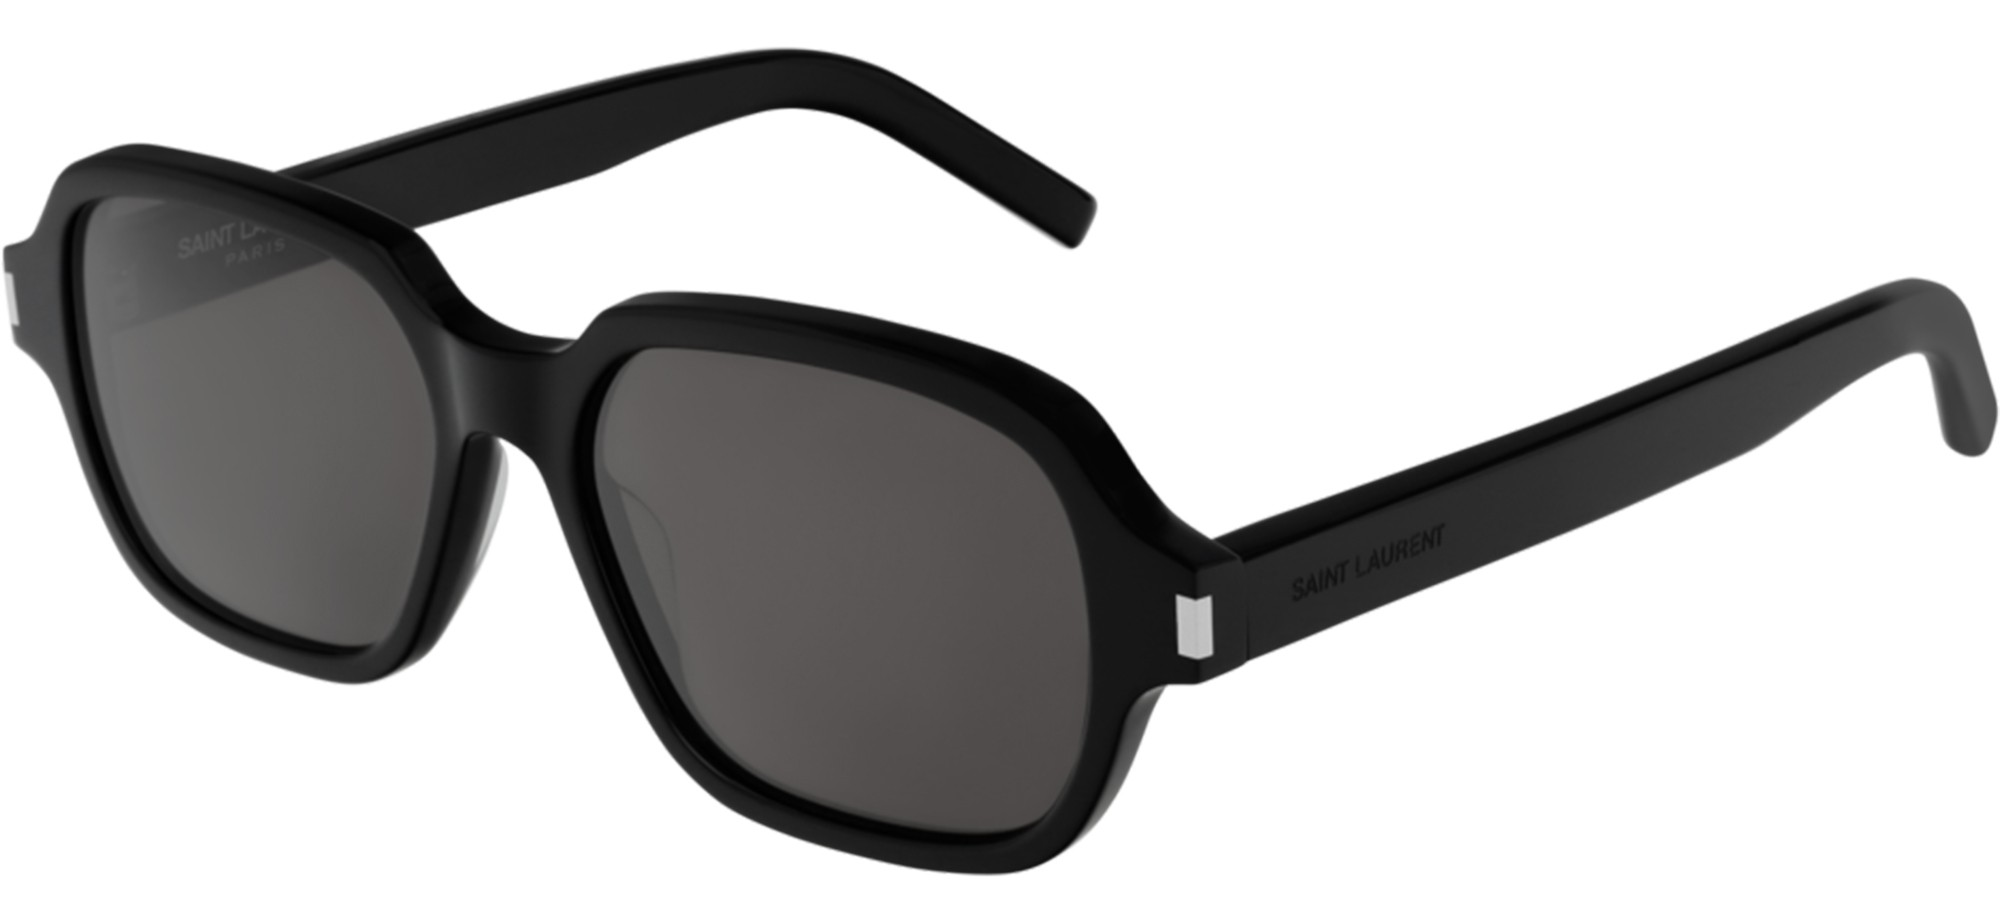 Saint Laurent SL 292